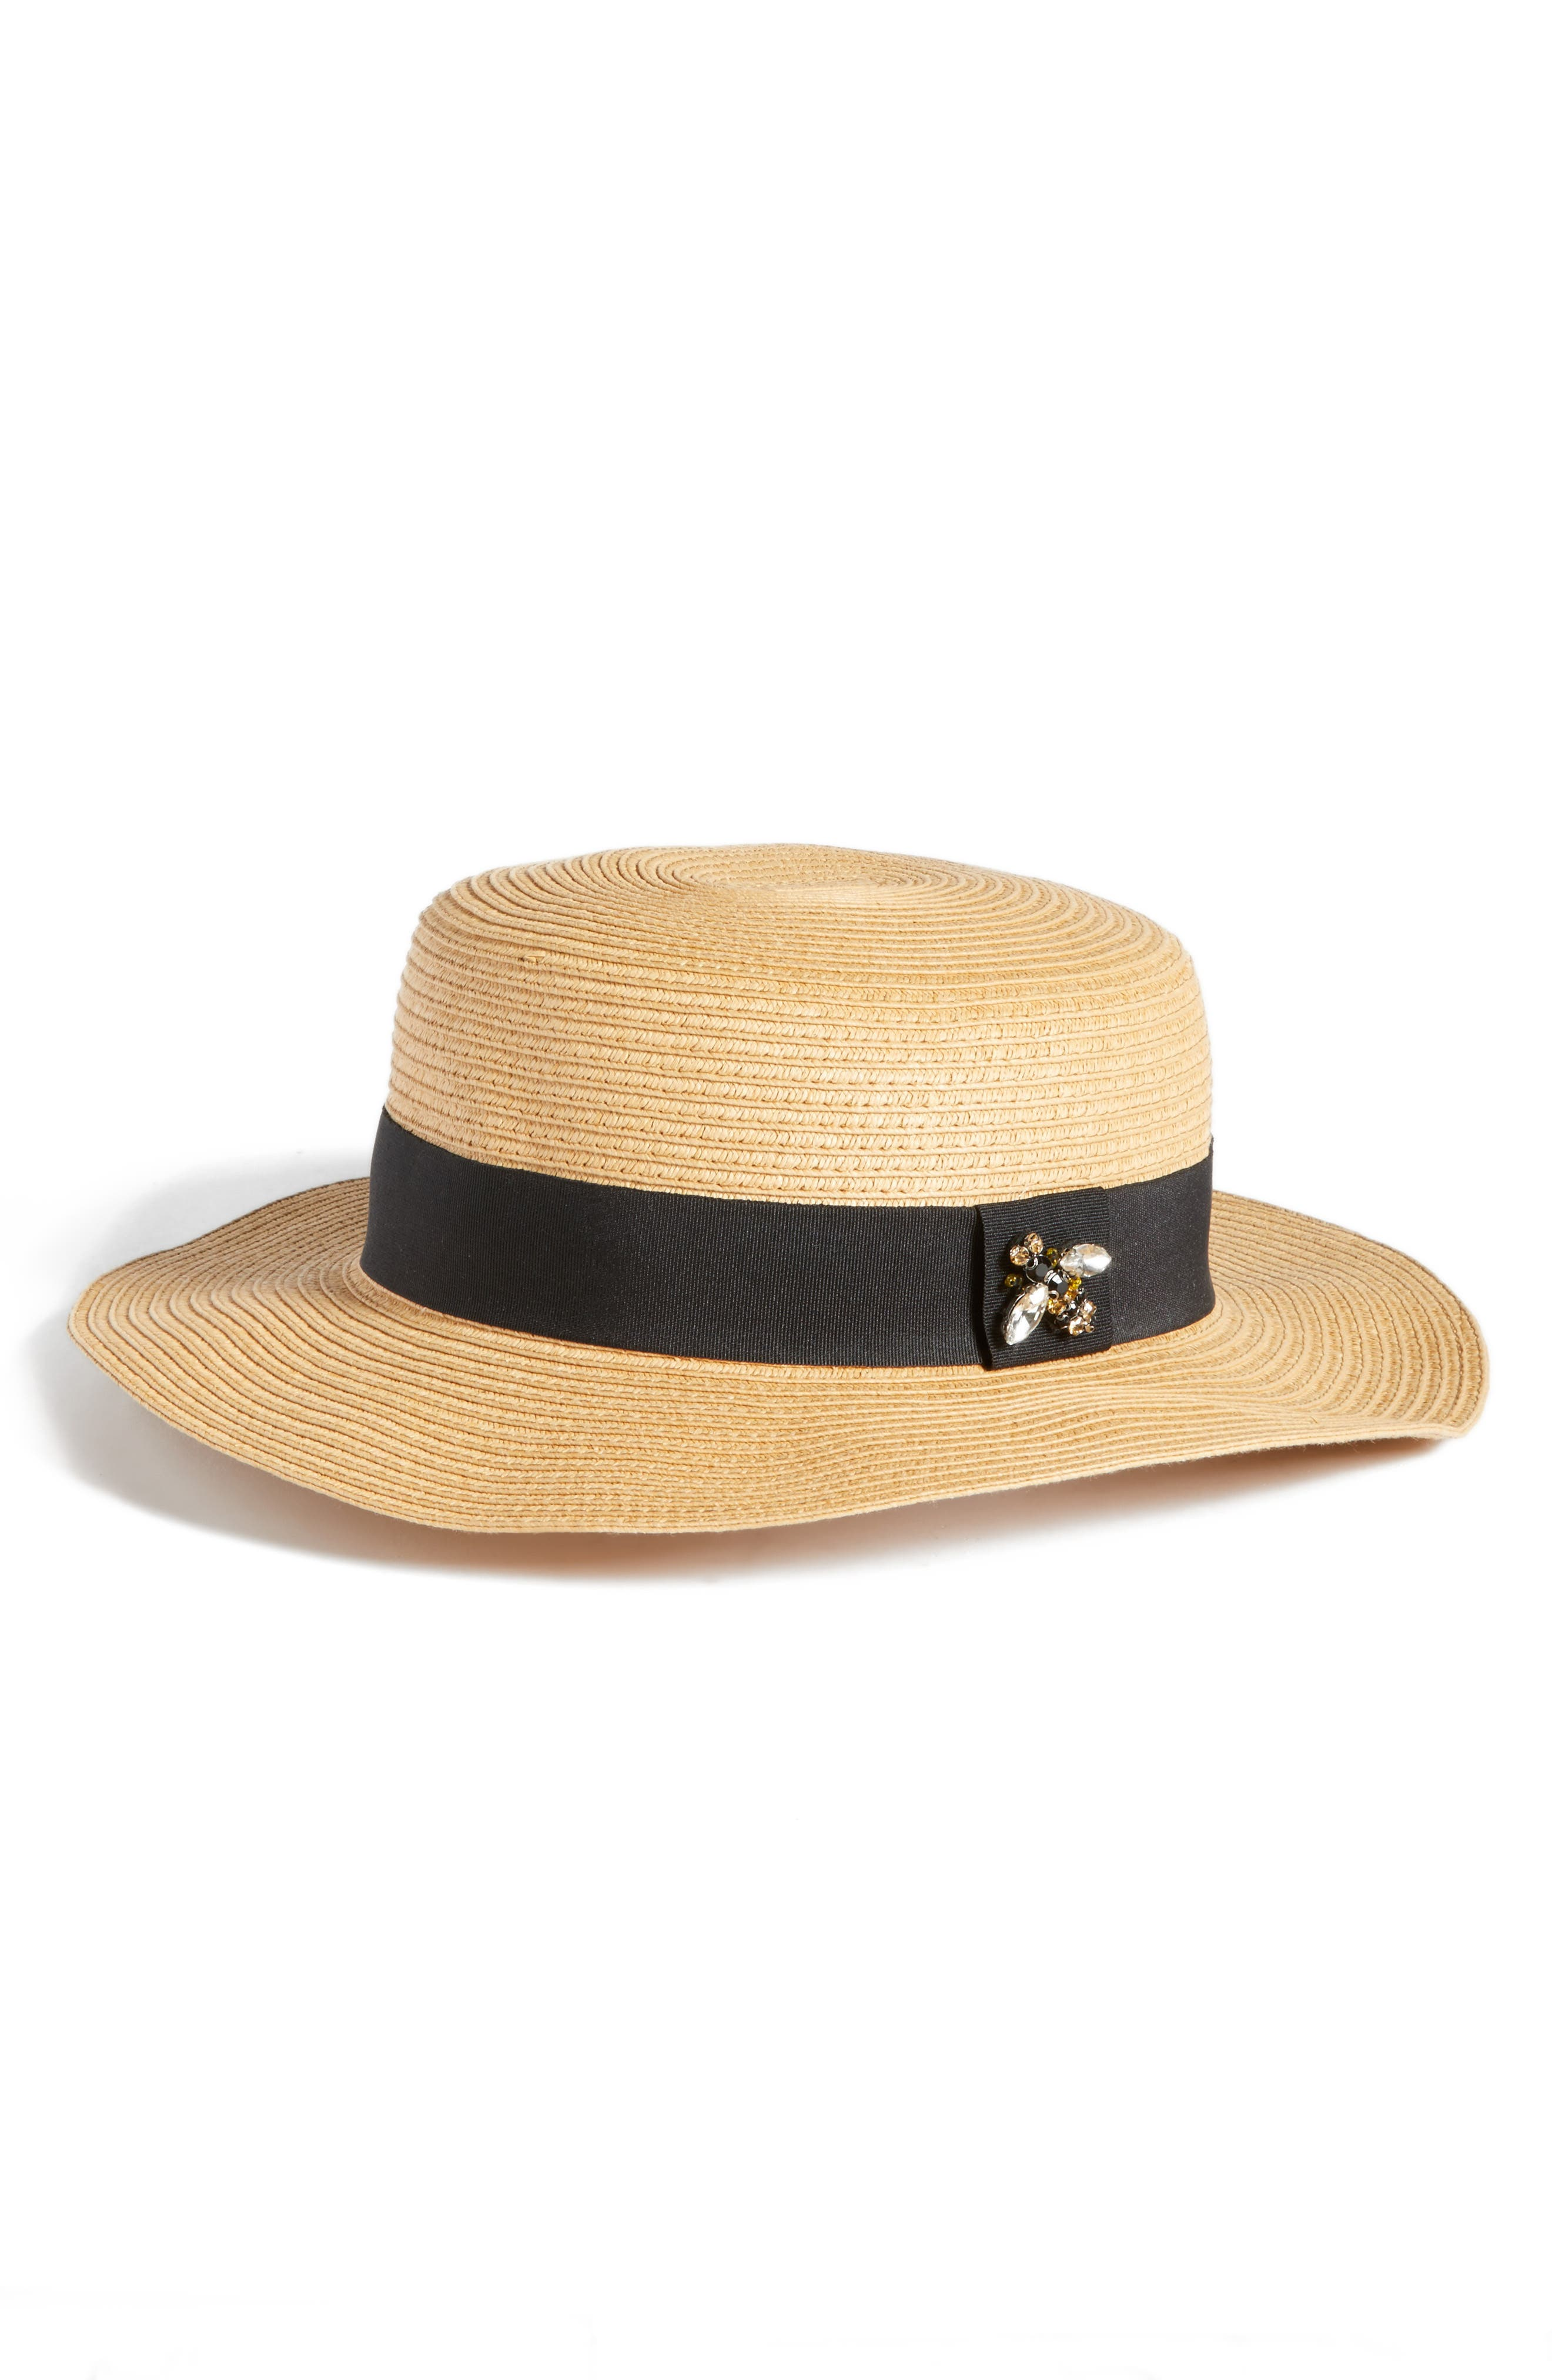 Straw Boater Hat,                         Main,                         color, 238